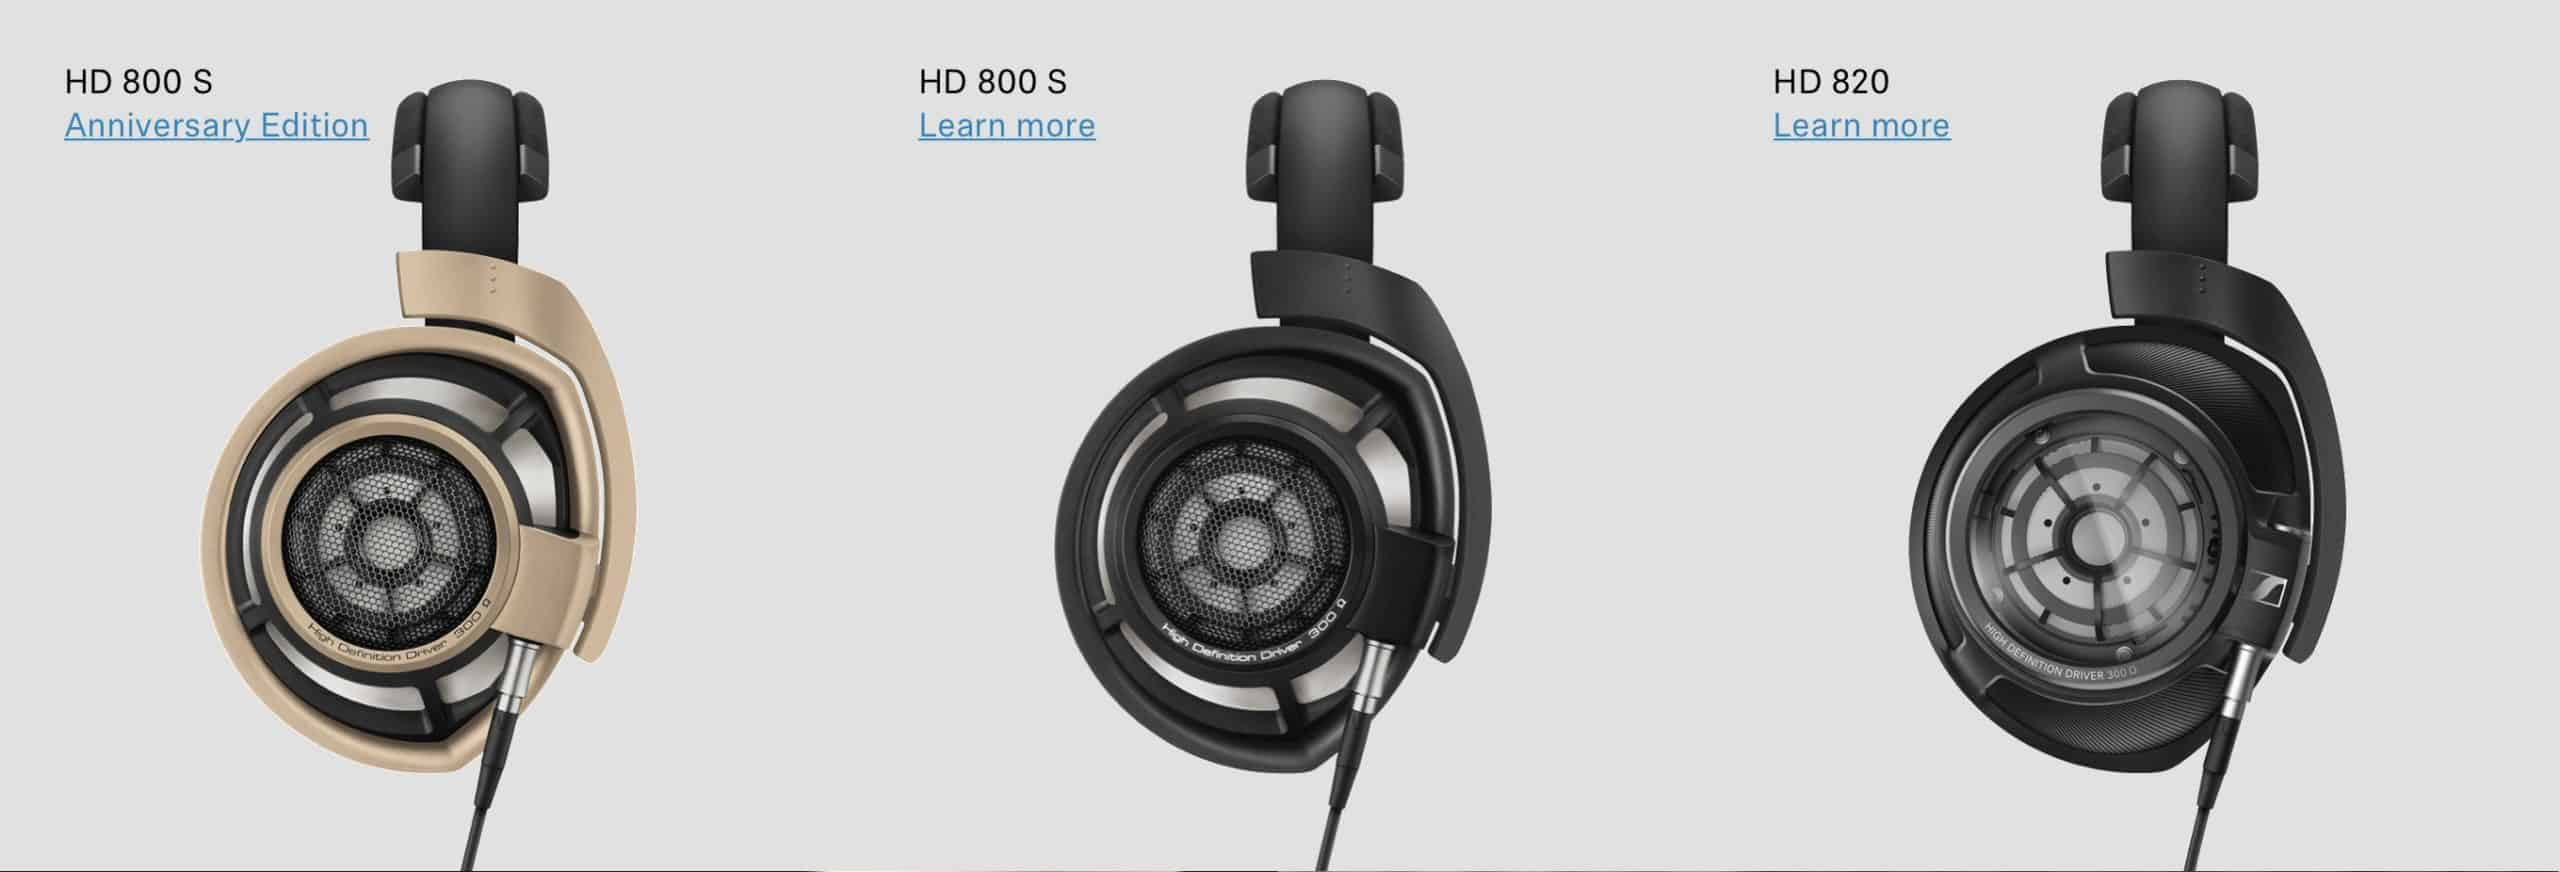 Sennheiser launches new webshop to connect customers in the UAE directly to the product lineup